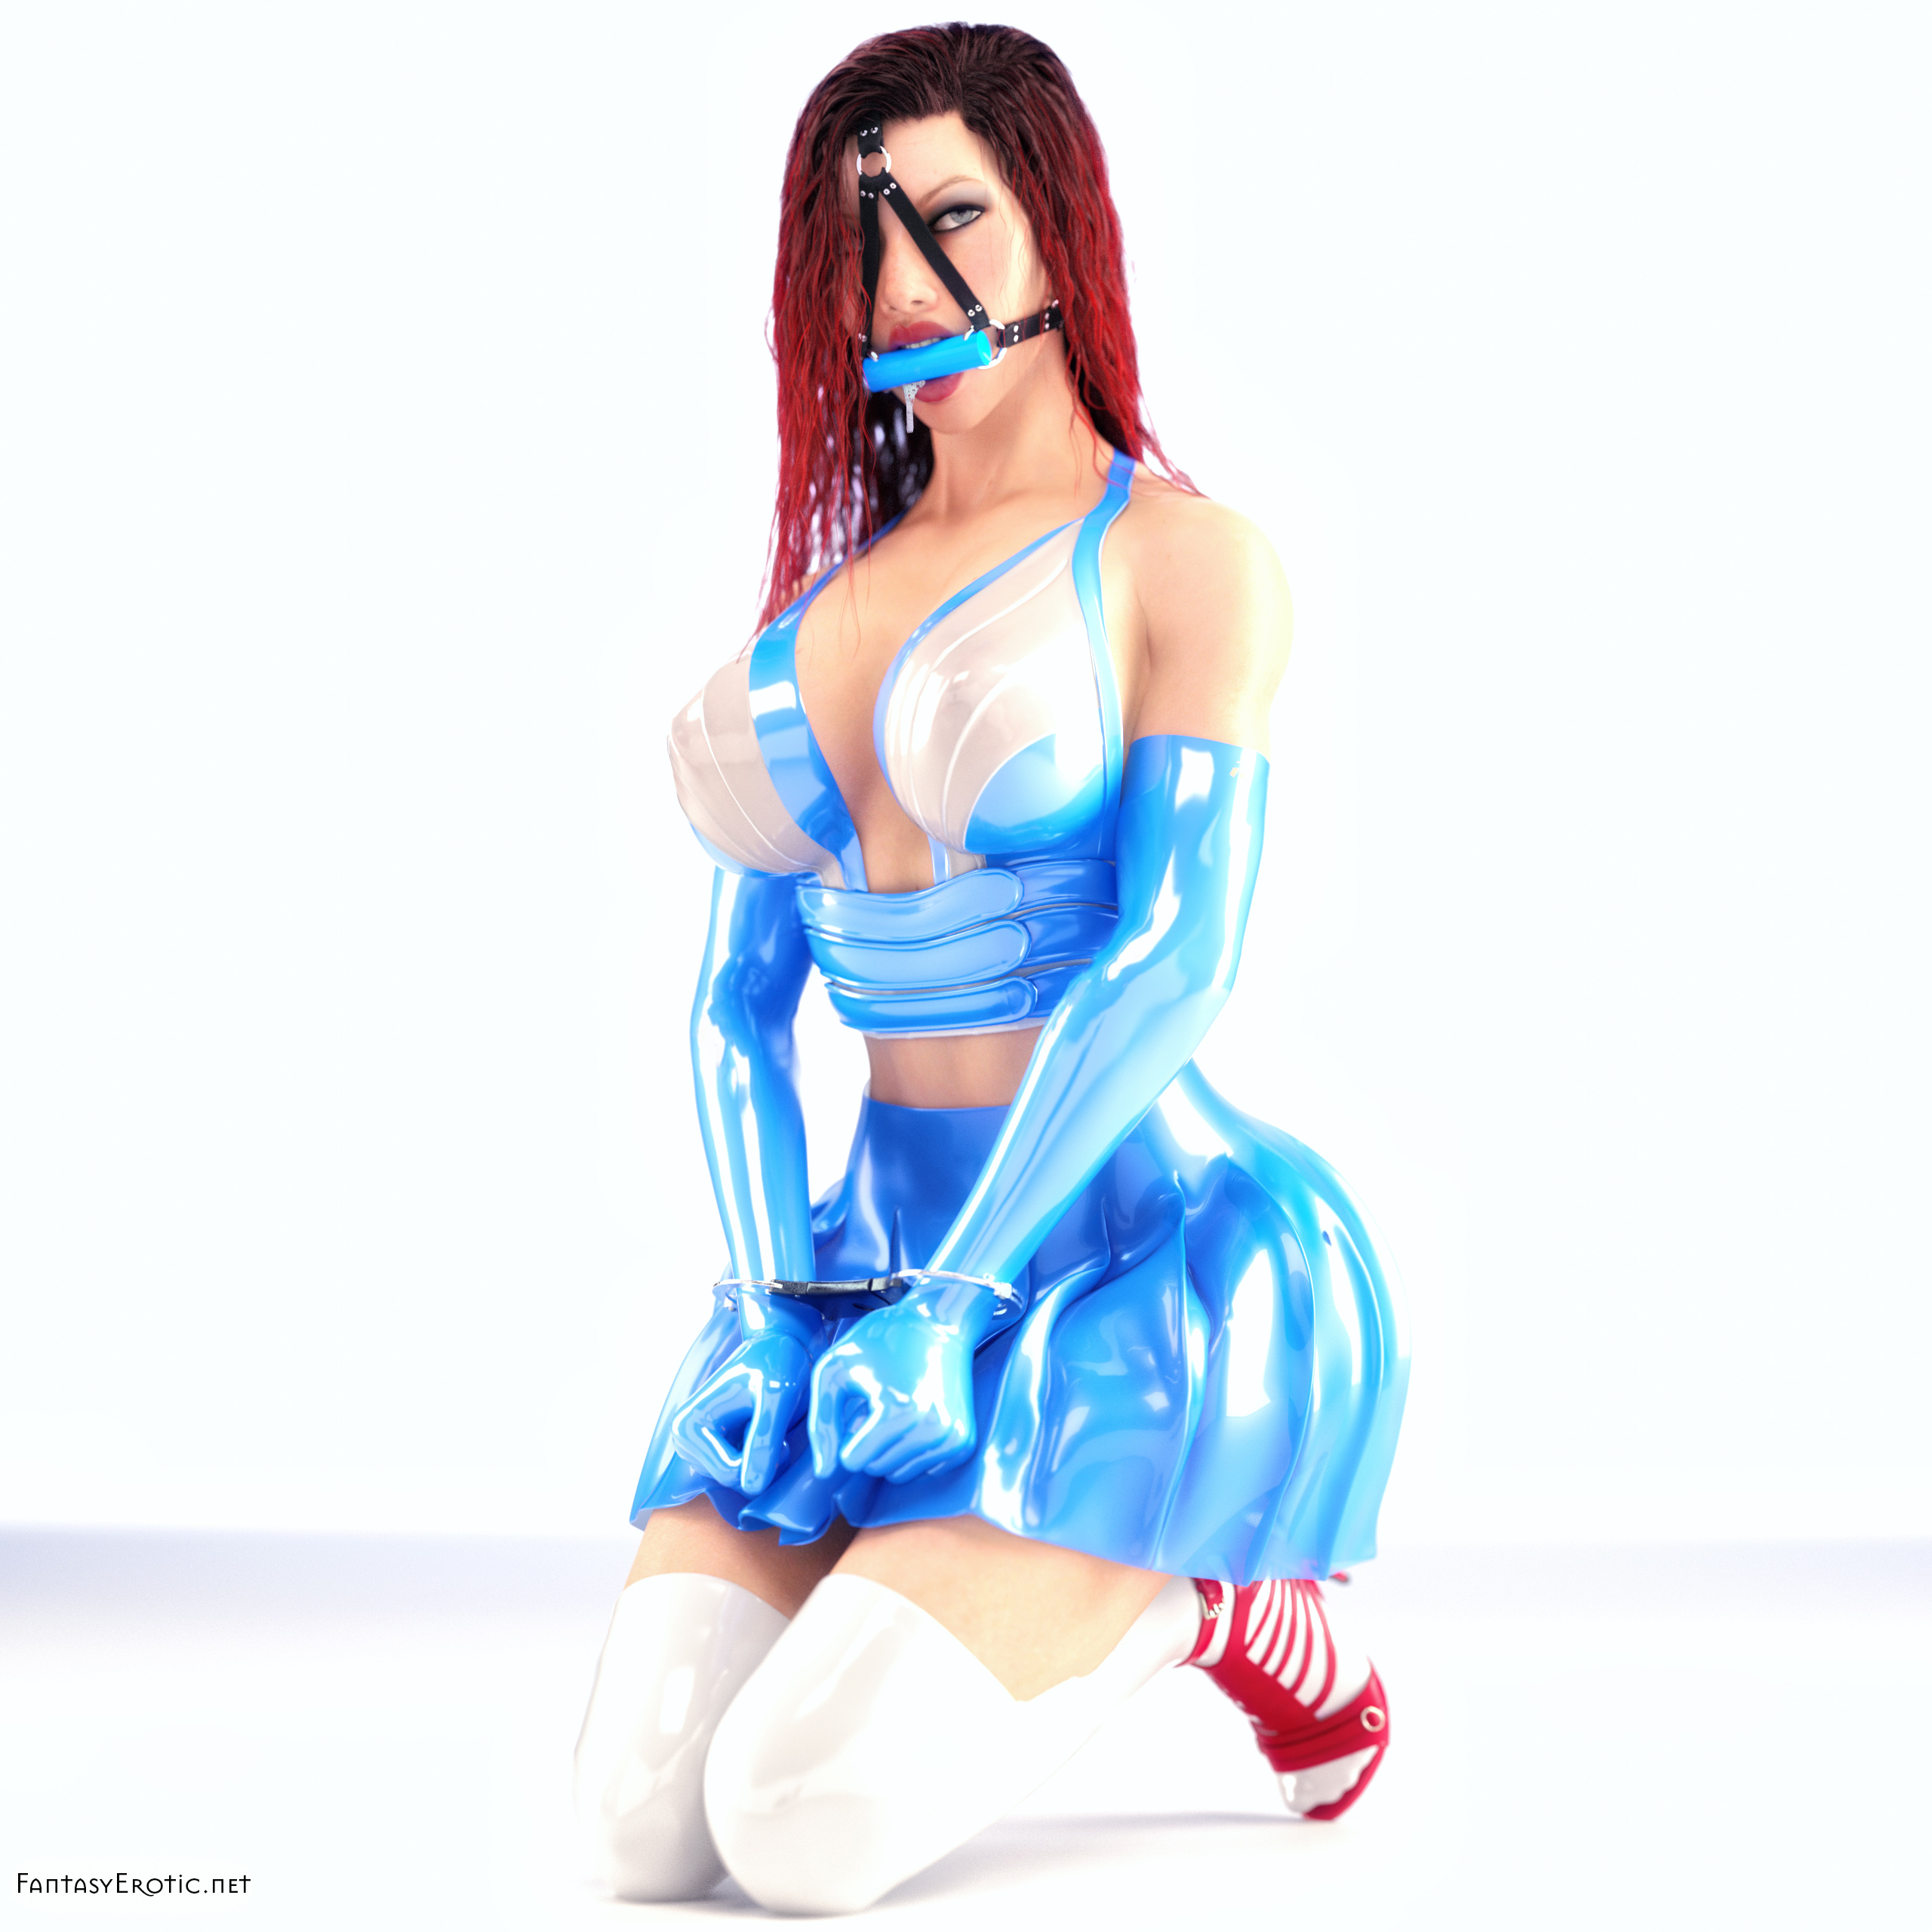 Highkey Fetish Fashion in Daz3D